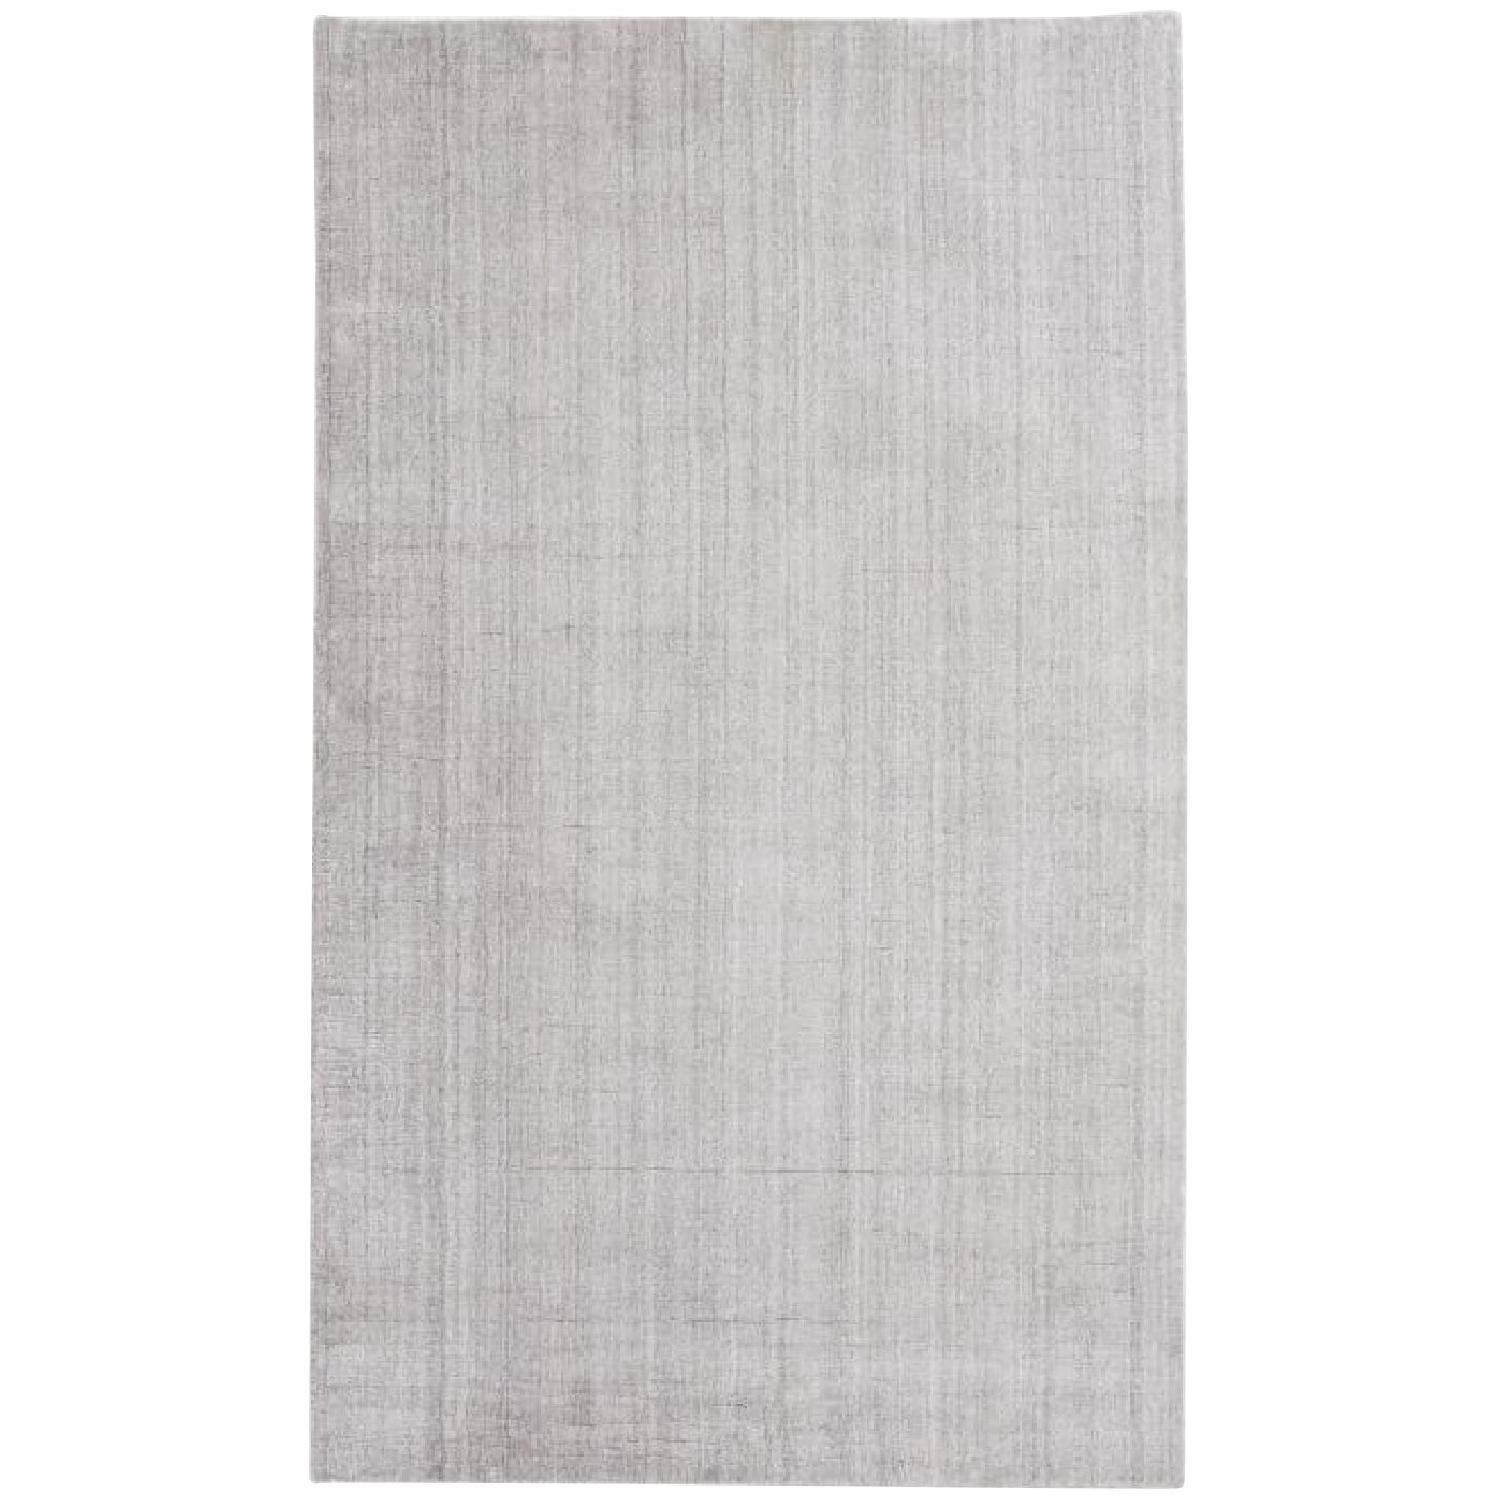 West Elm Handloomed Shine Rug